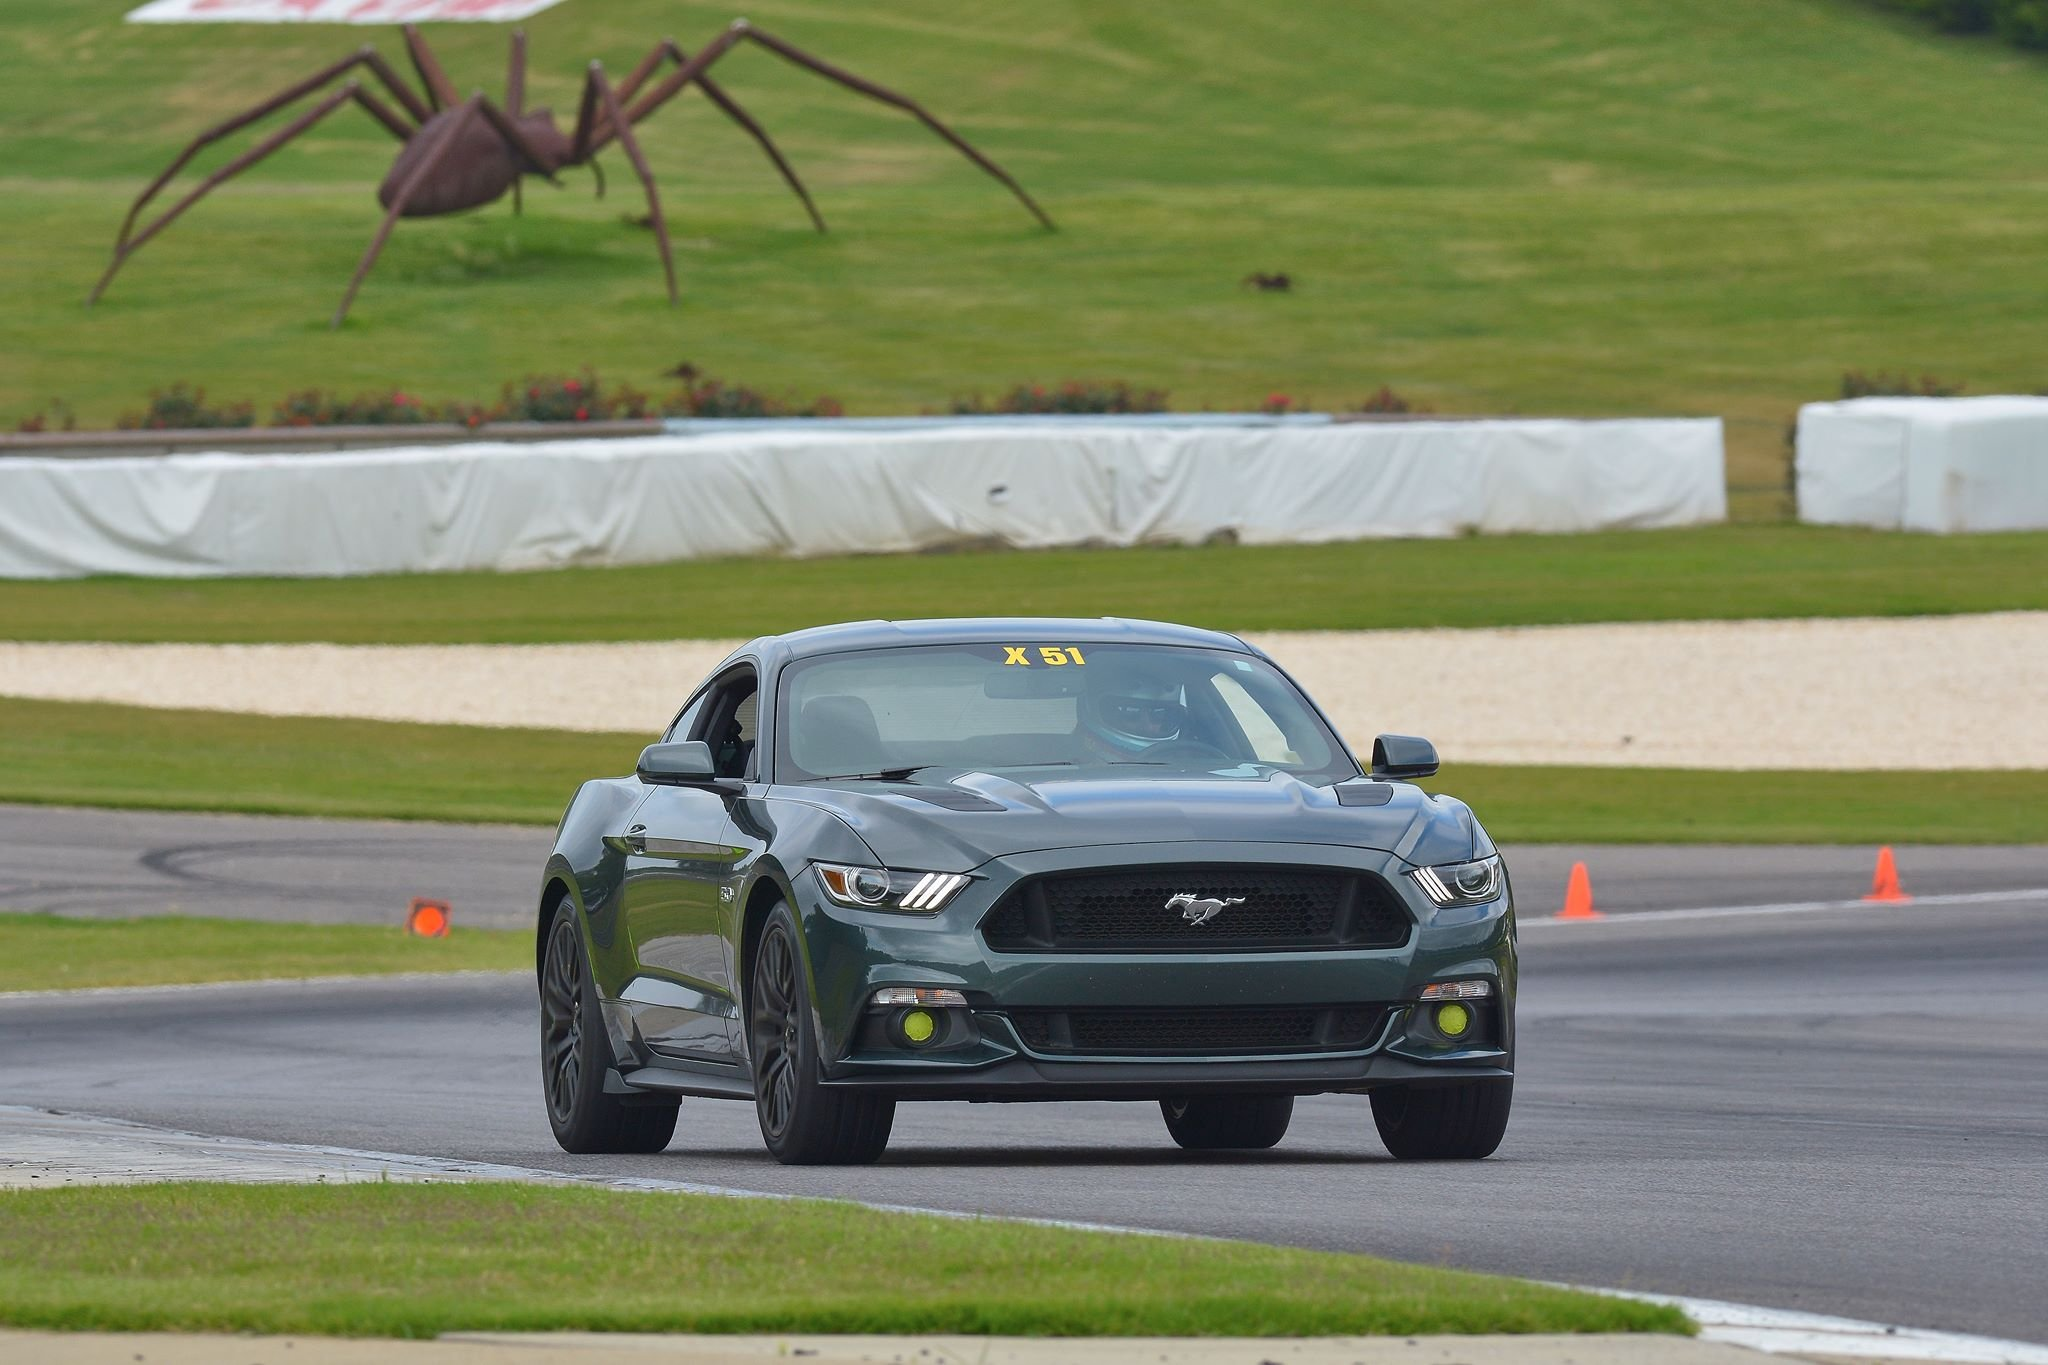 Top Speed!! - Ford Mustang Forum